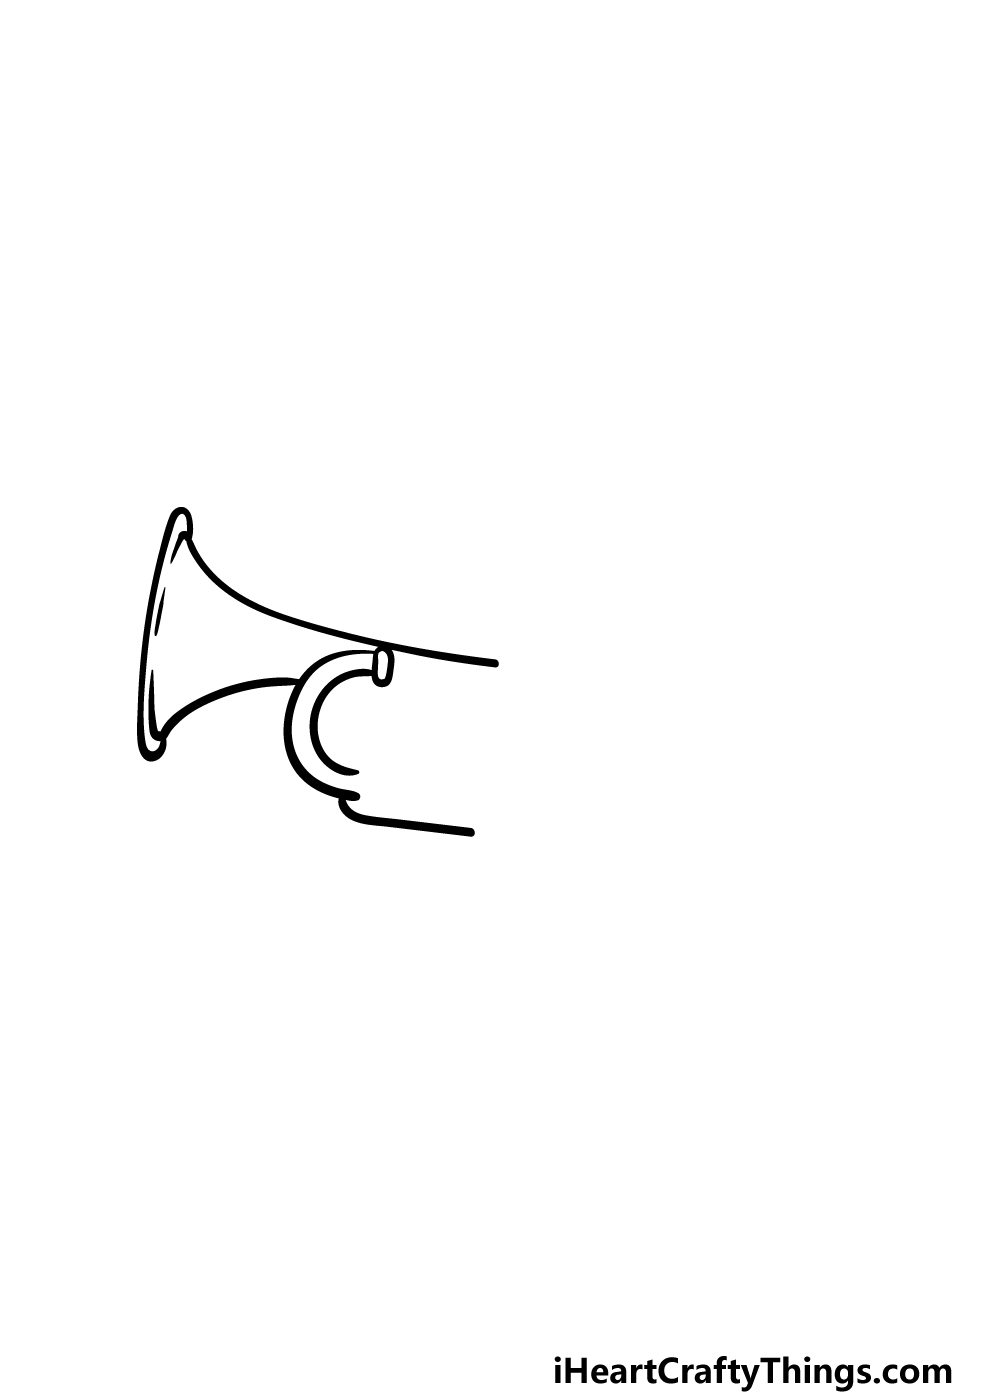 drawing a trumpet step 1